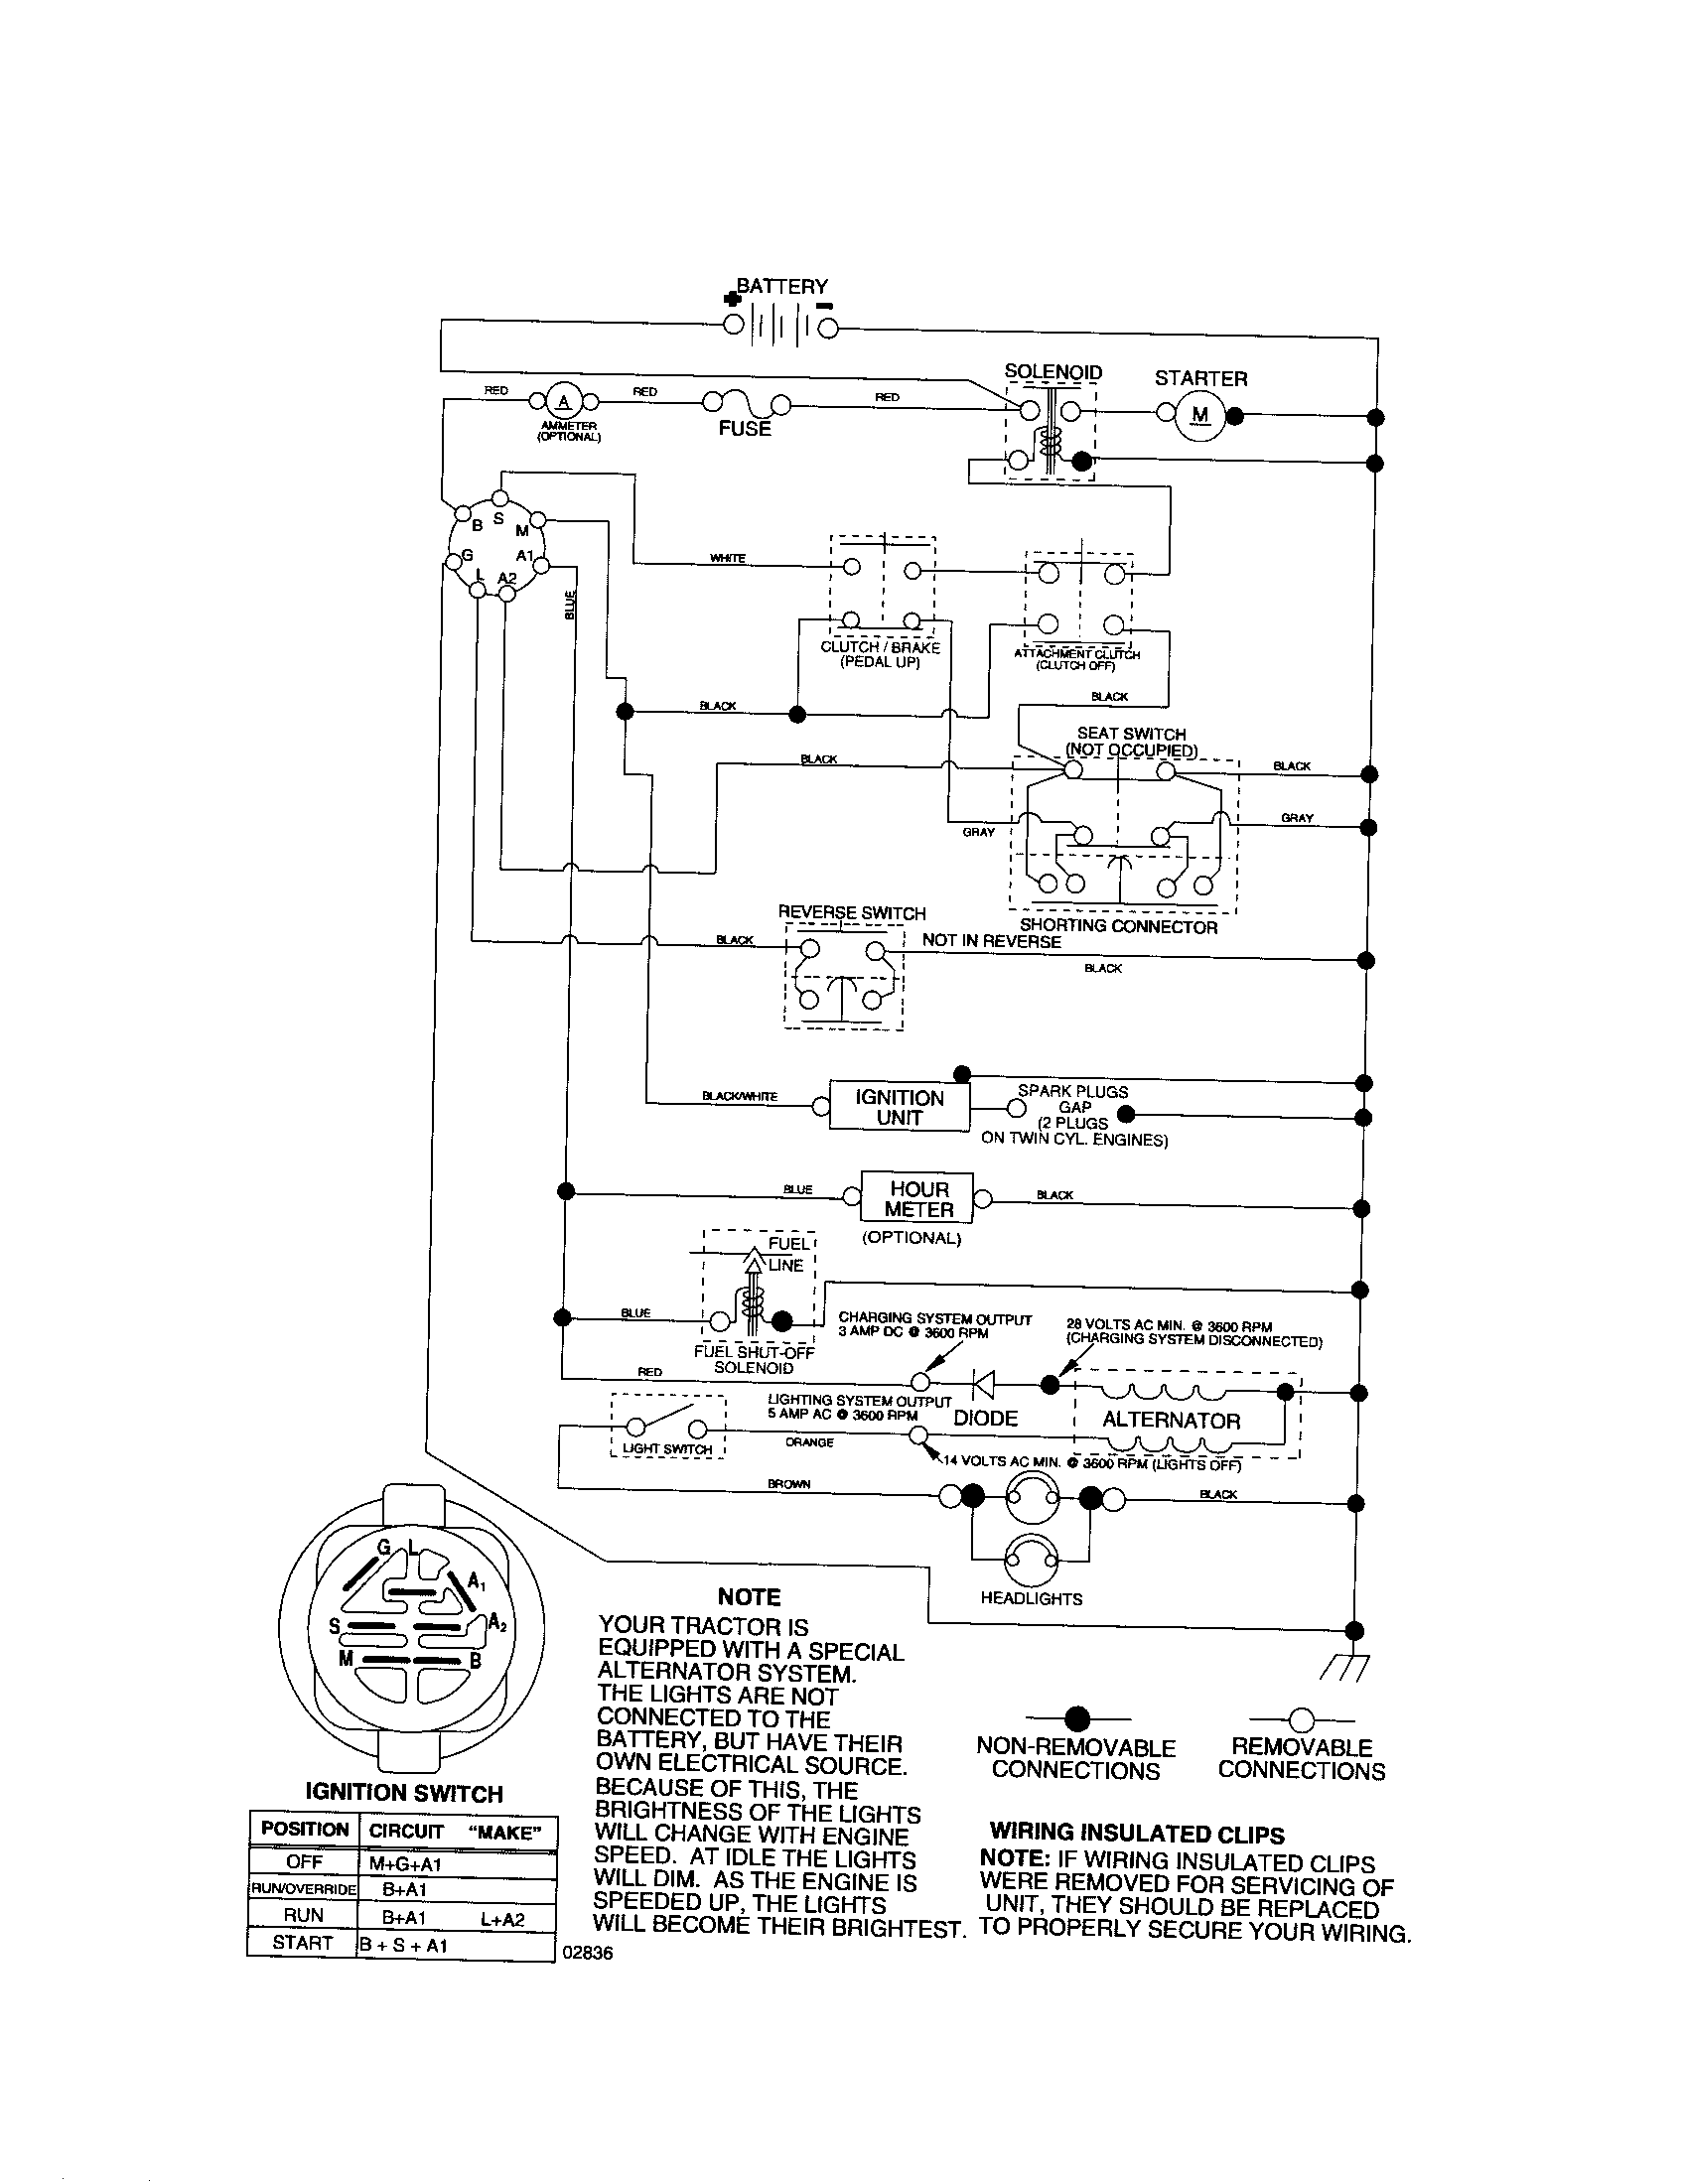 hight resolution of lawn mower battery charging system diagram